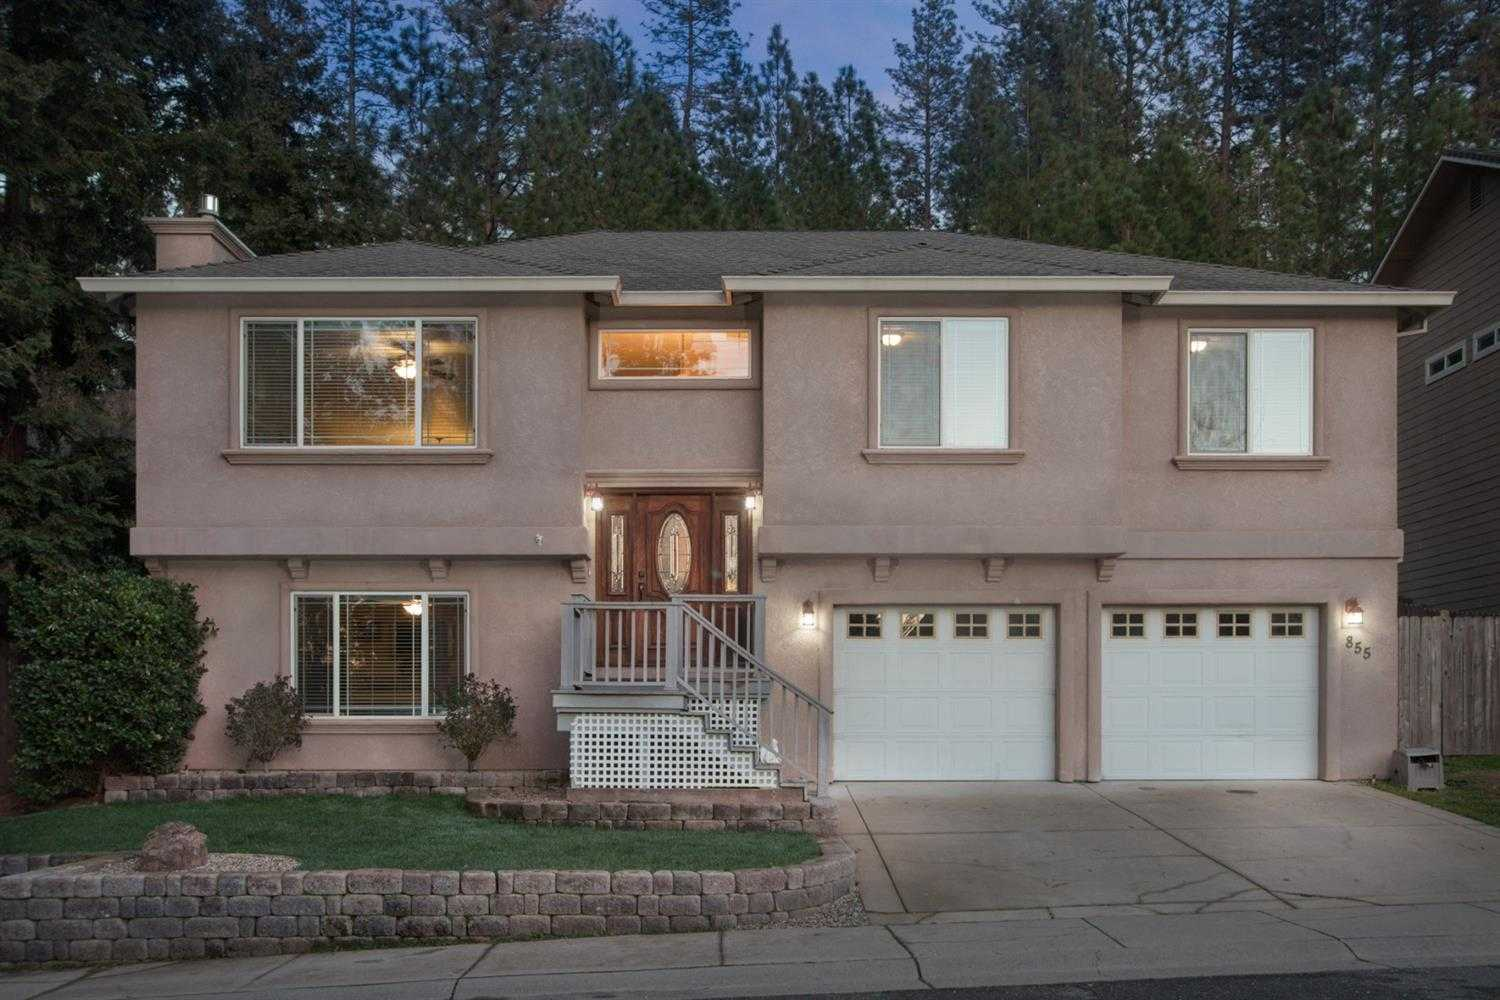 $491,500 - 4Br/3Ba -  for Sale in Placerville